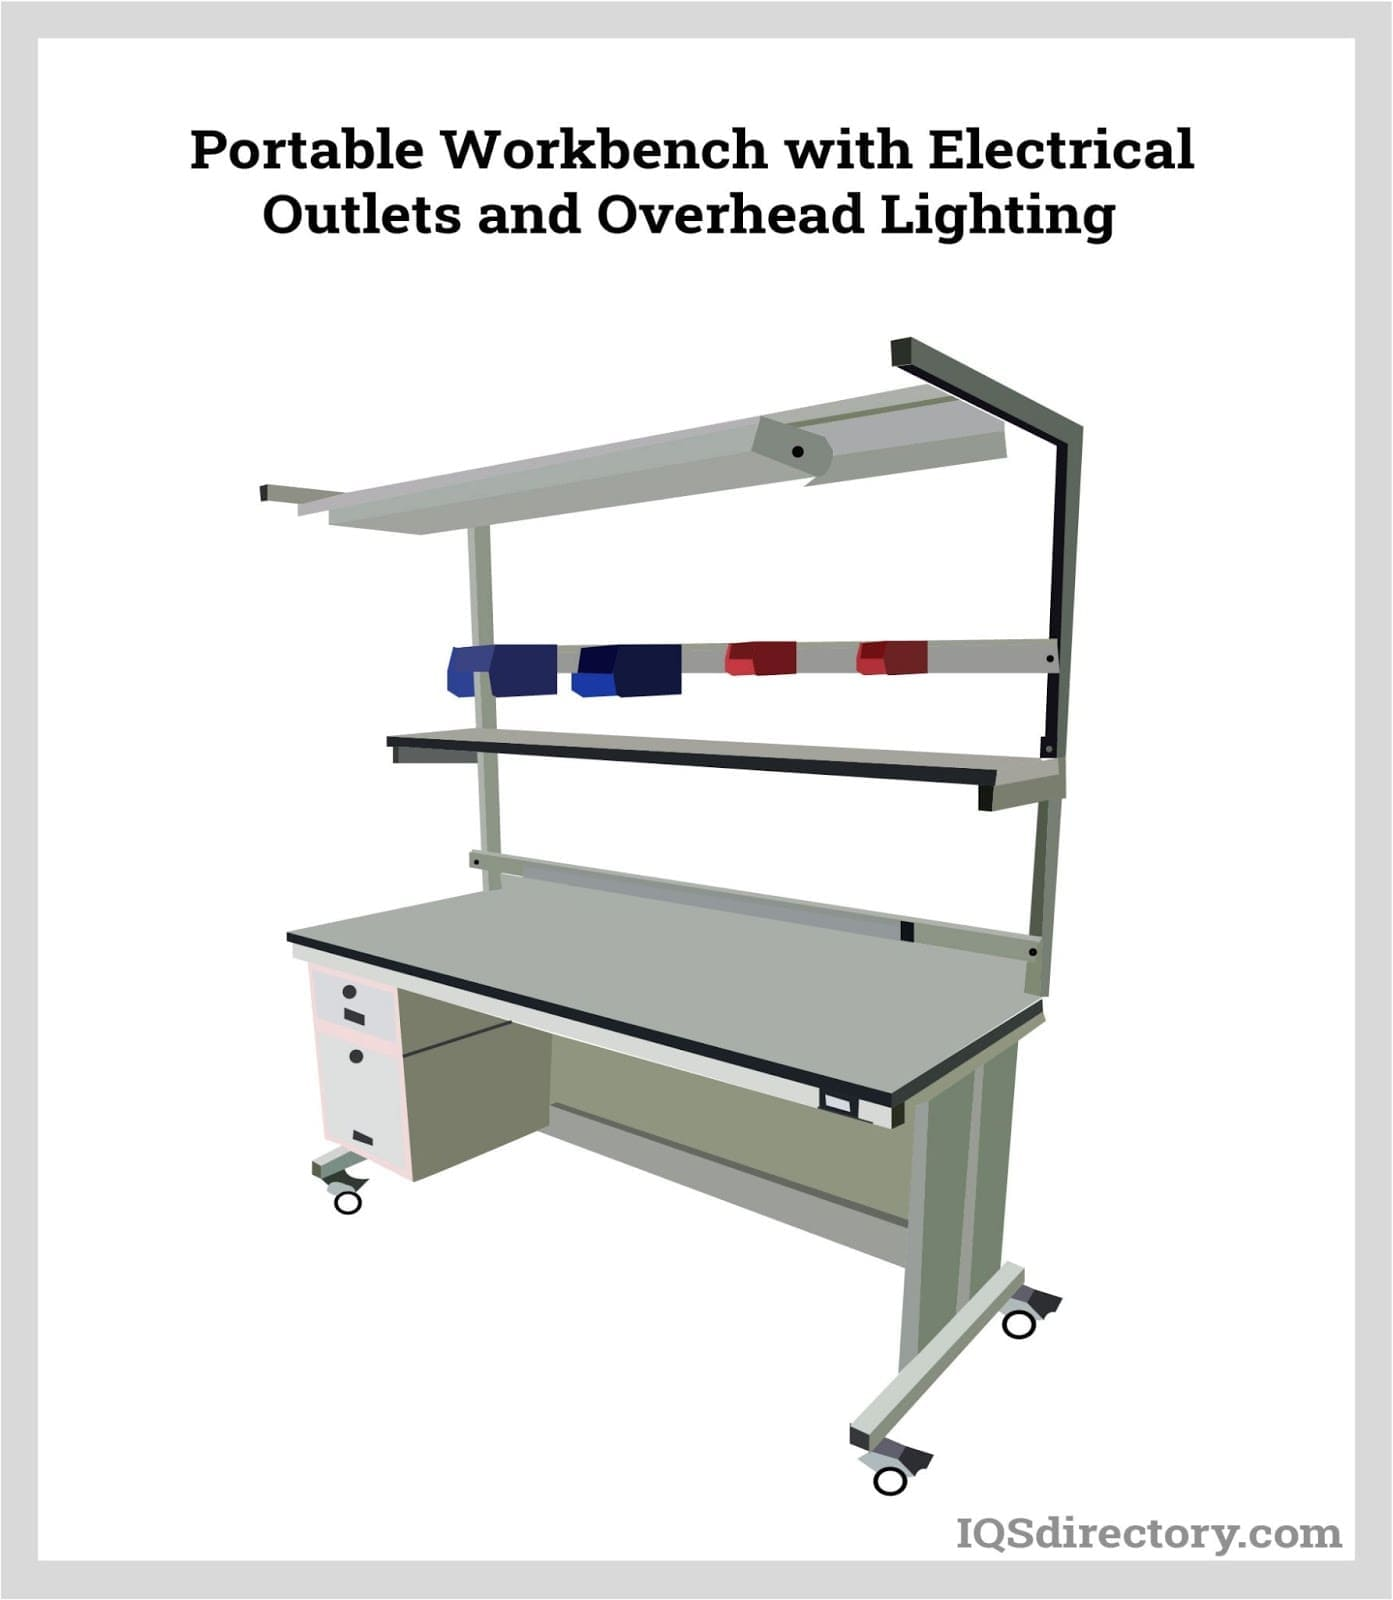 Portable Workbench with Electrical Outlets and Overhead Lighting